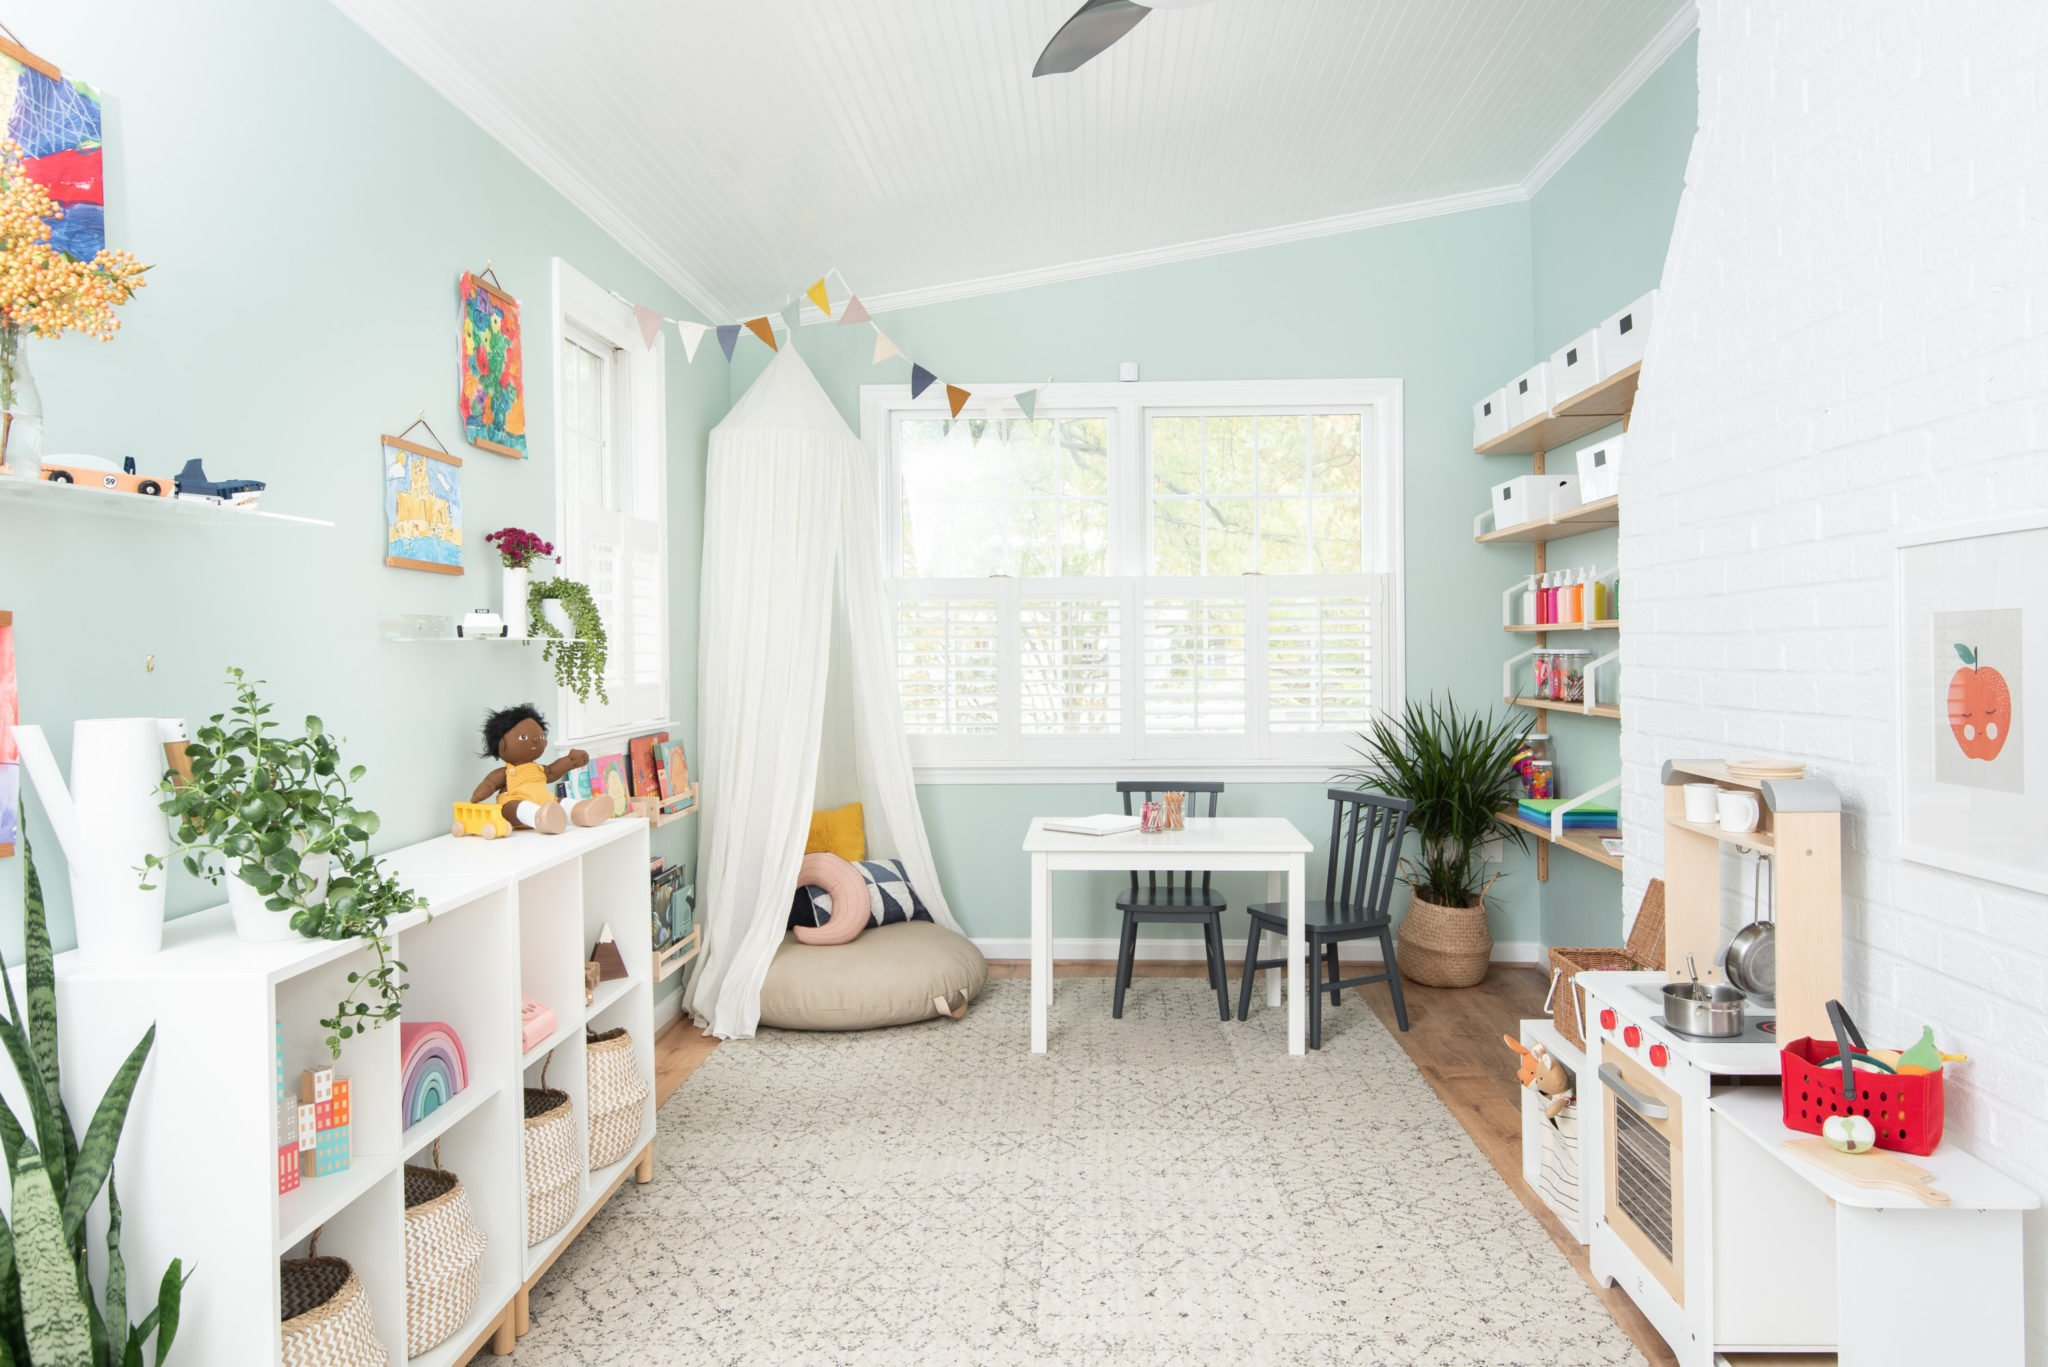 These Ex-Teachers Design Adorable Playrooms That Promote Better Child Development